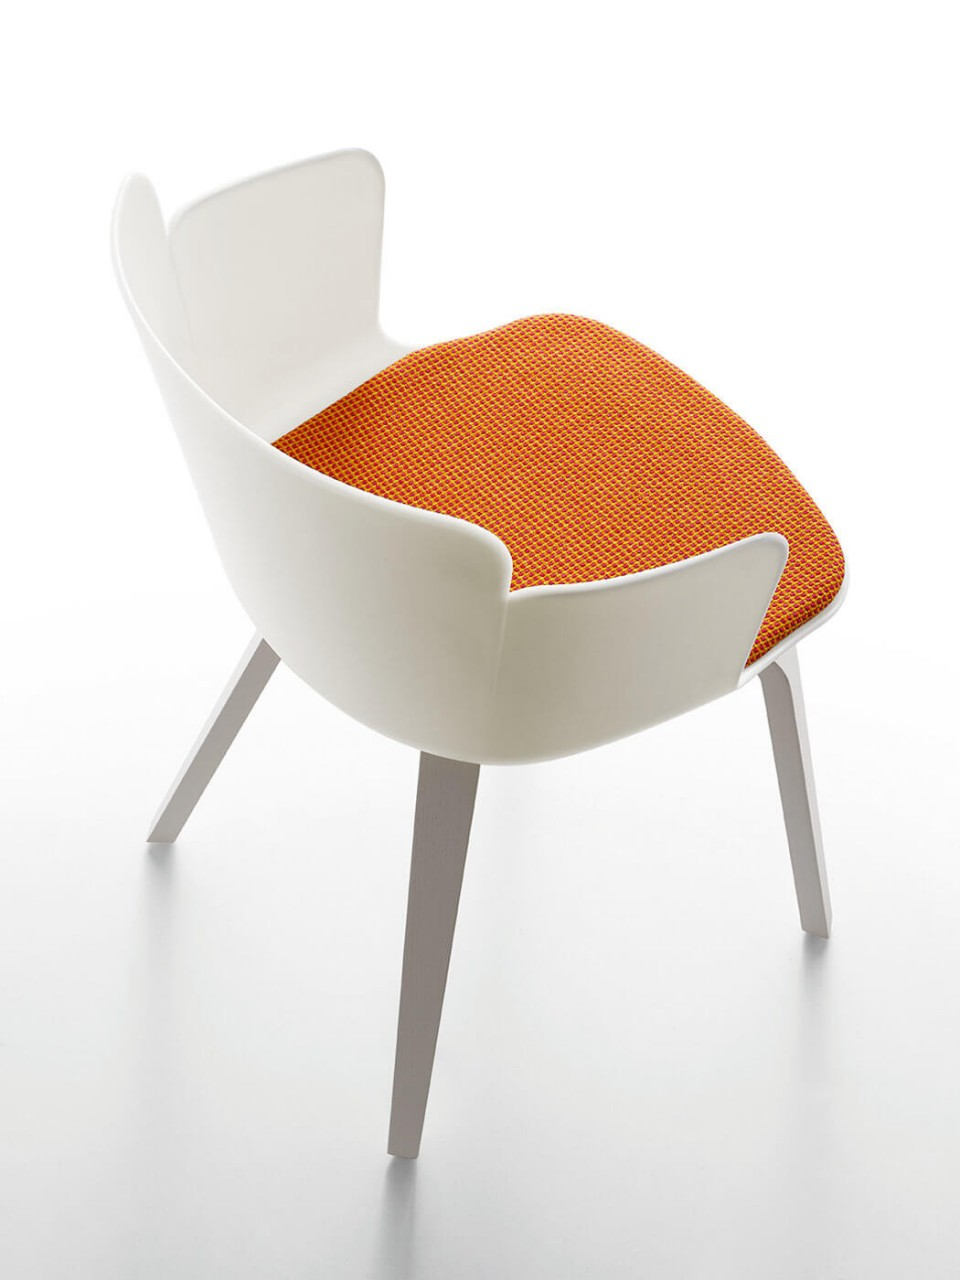 Calla armchair with wooden frame and white polypropylene seat. Optional orange fabric cushion